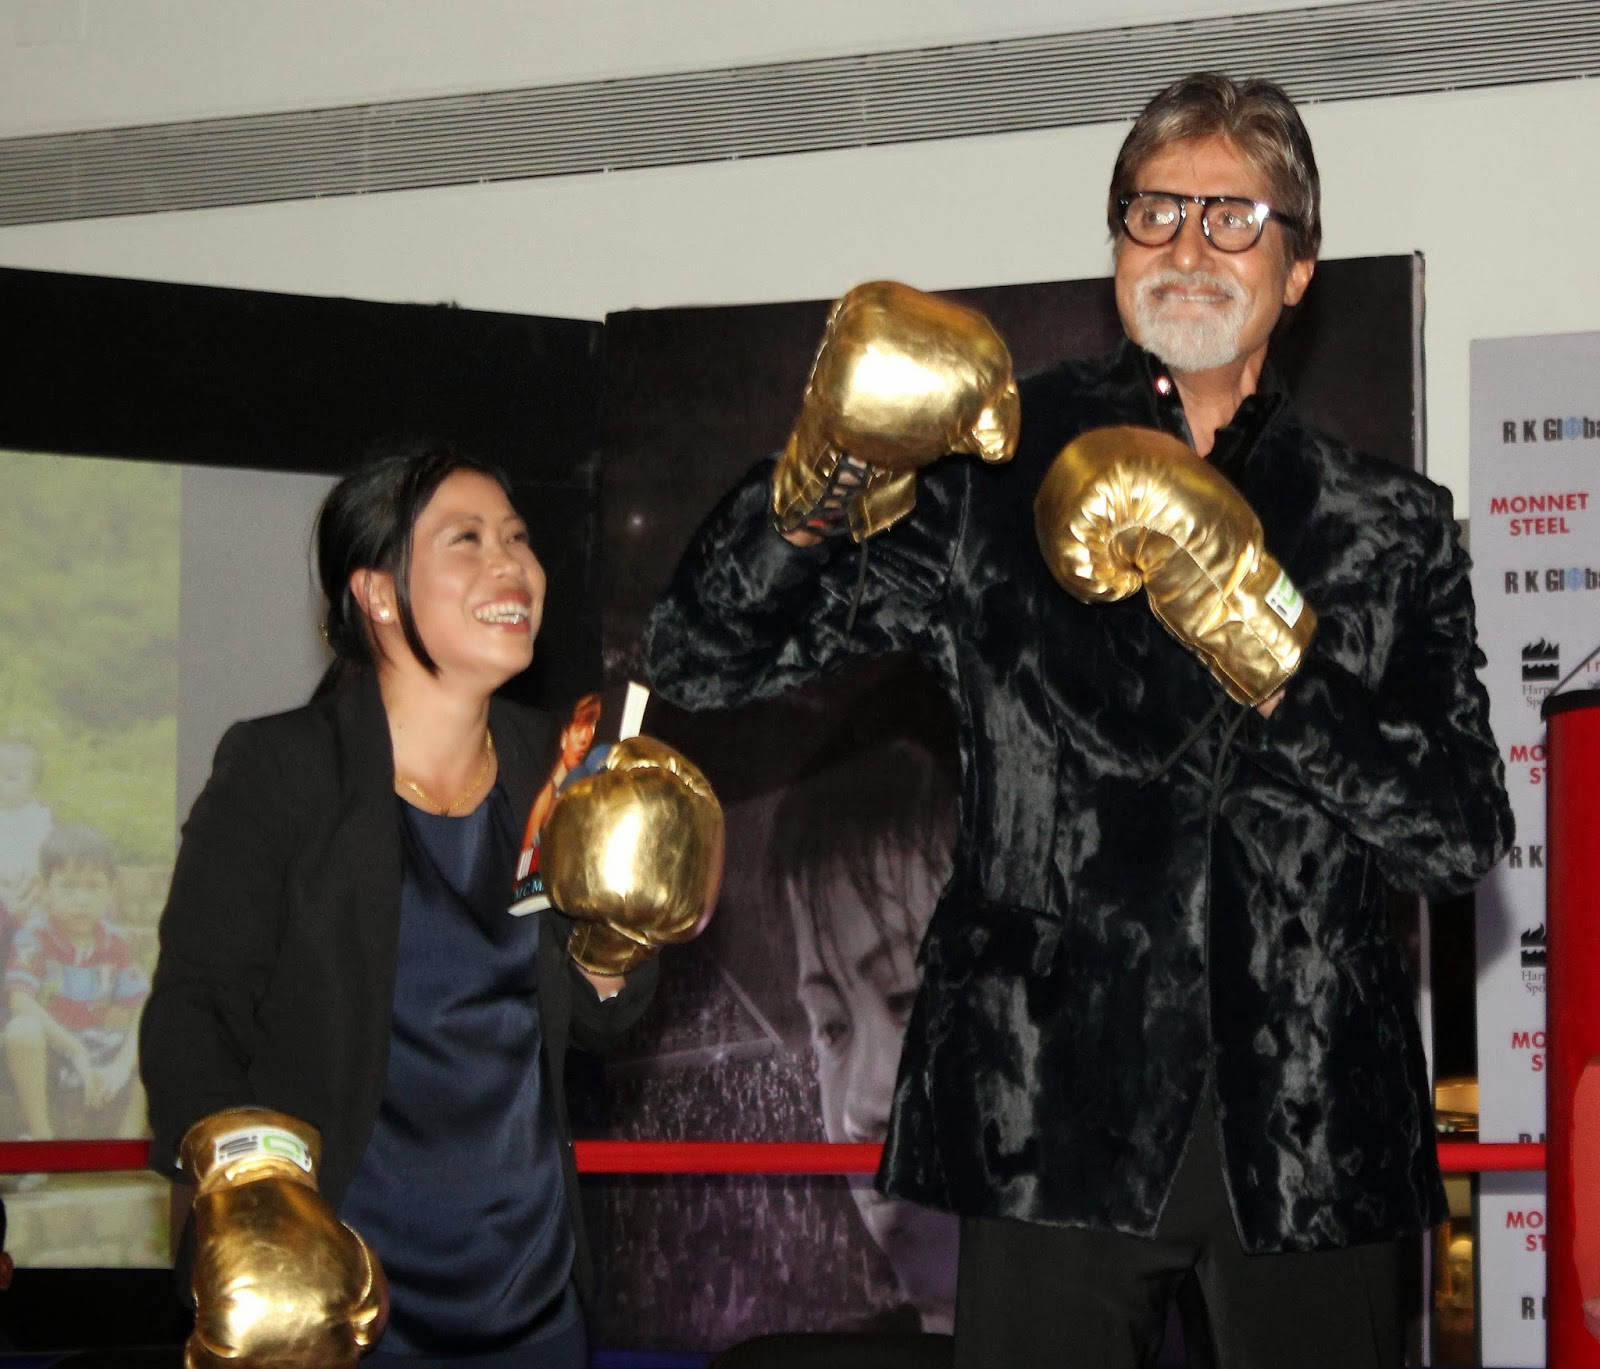 http://2.bp.blogspot.com/-KBamWO4NKk4/UqdN3x8er8I/AAAAAAABmjk/lMrssaXjrDw/s1600/Amitabh-Launch-The-Biography-Of-Olympics-Medallist-And-Boxer-Mary-Kom-51.JPG